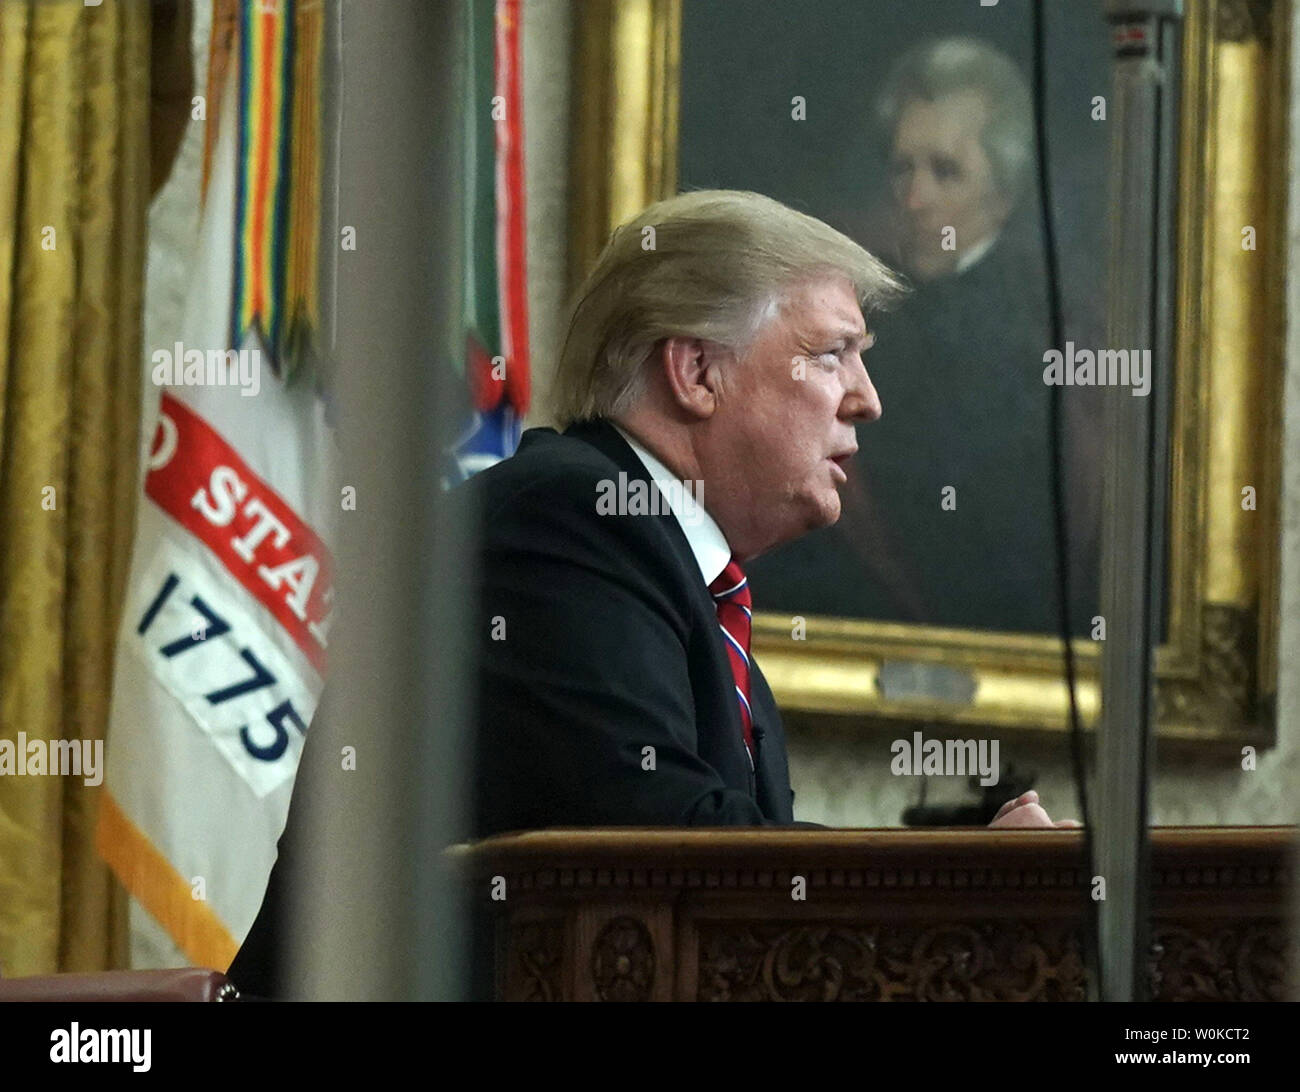 President Donald Trump delivers a televised address to the nation from the Oval Office at the White House in Washington, DC on January 8, 2019.  Photo taken through the Oval Office windows.   The speech comes on the 18th day of a partial government shutdown cause by a dispute over a proposed border wall separating the United States and Mexico.     Photo by Kevin Dietsch/UPI - Stock Image